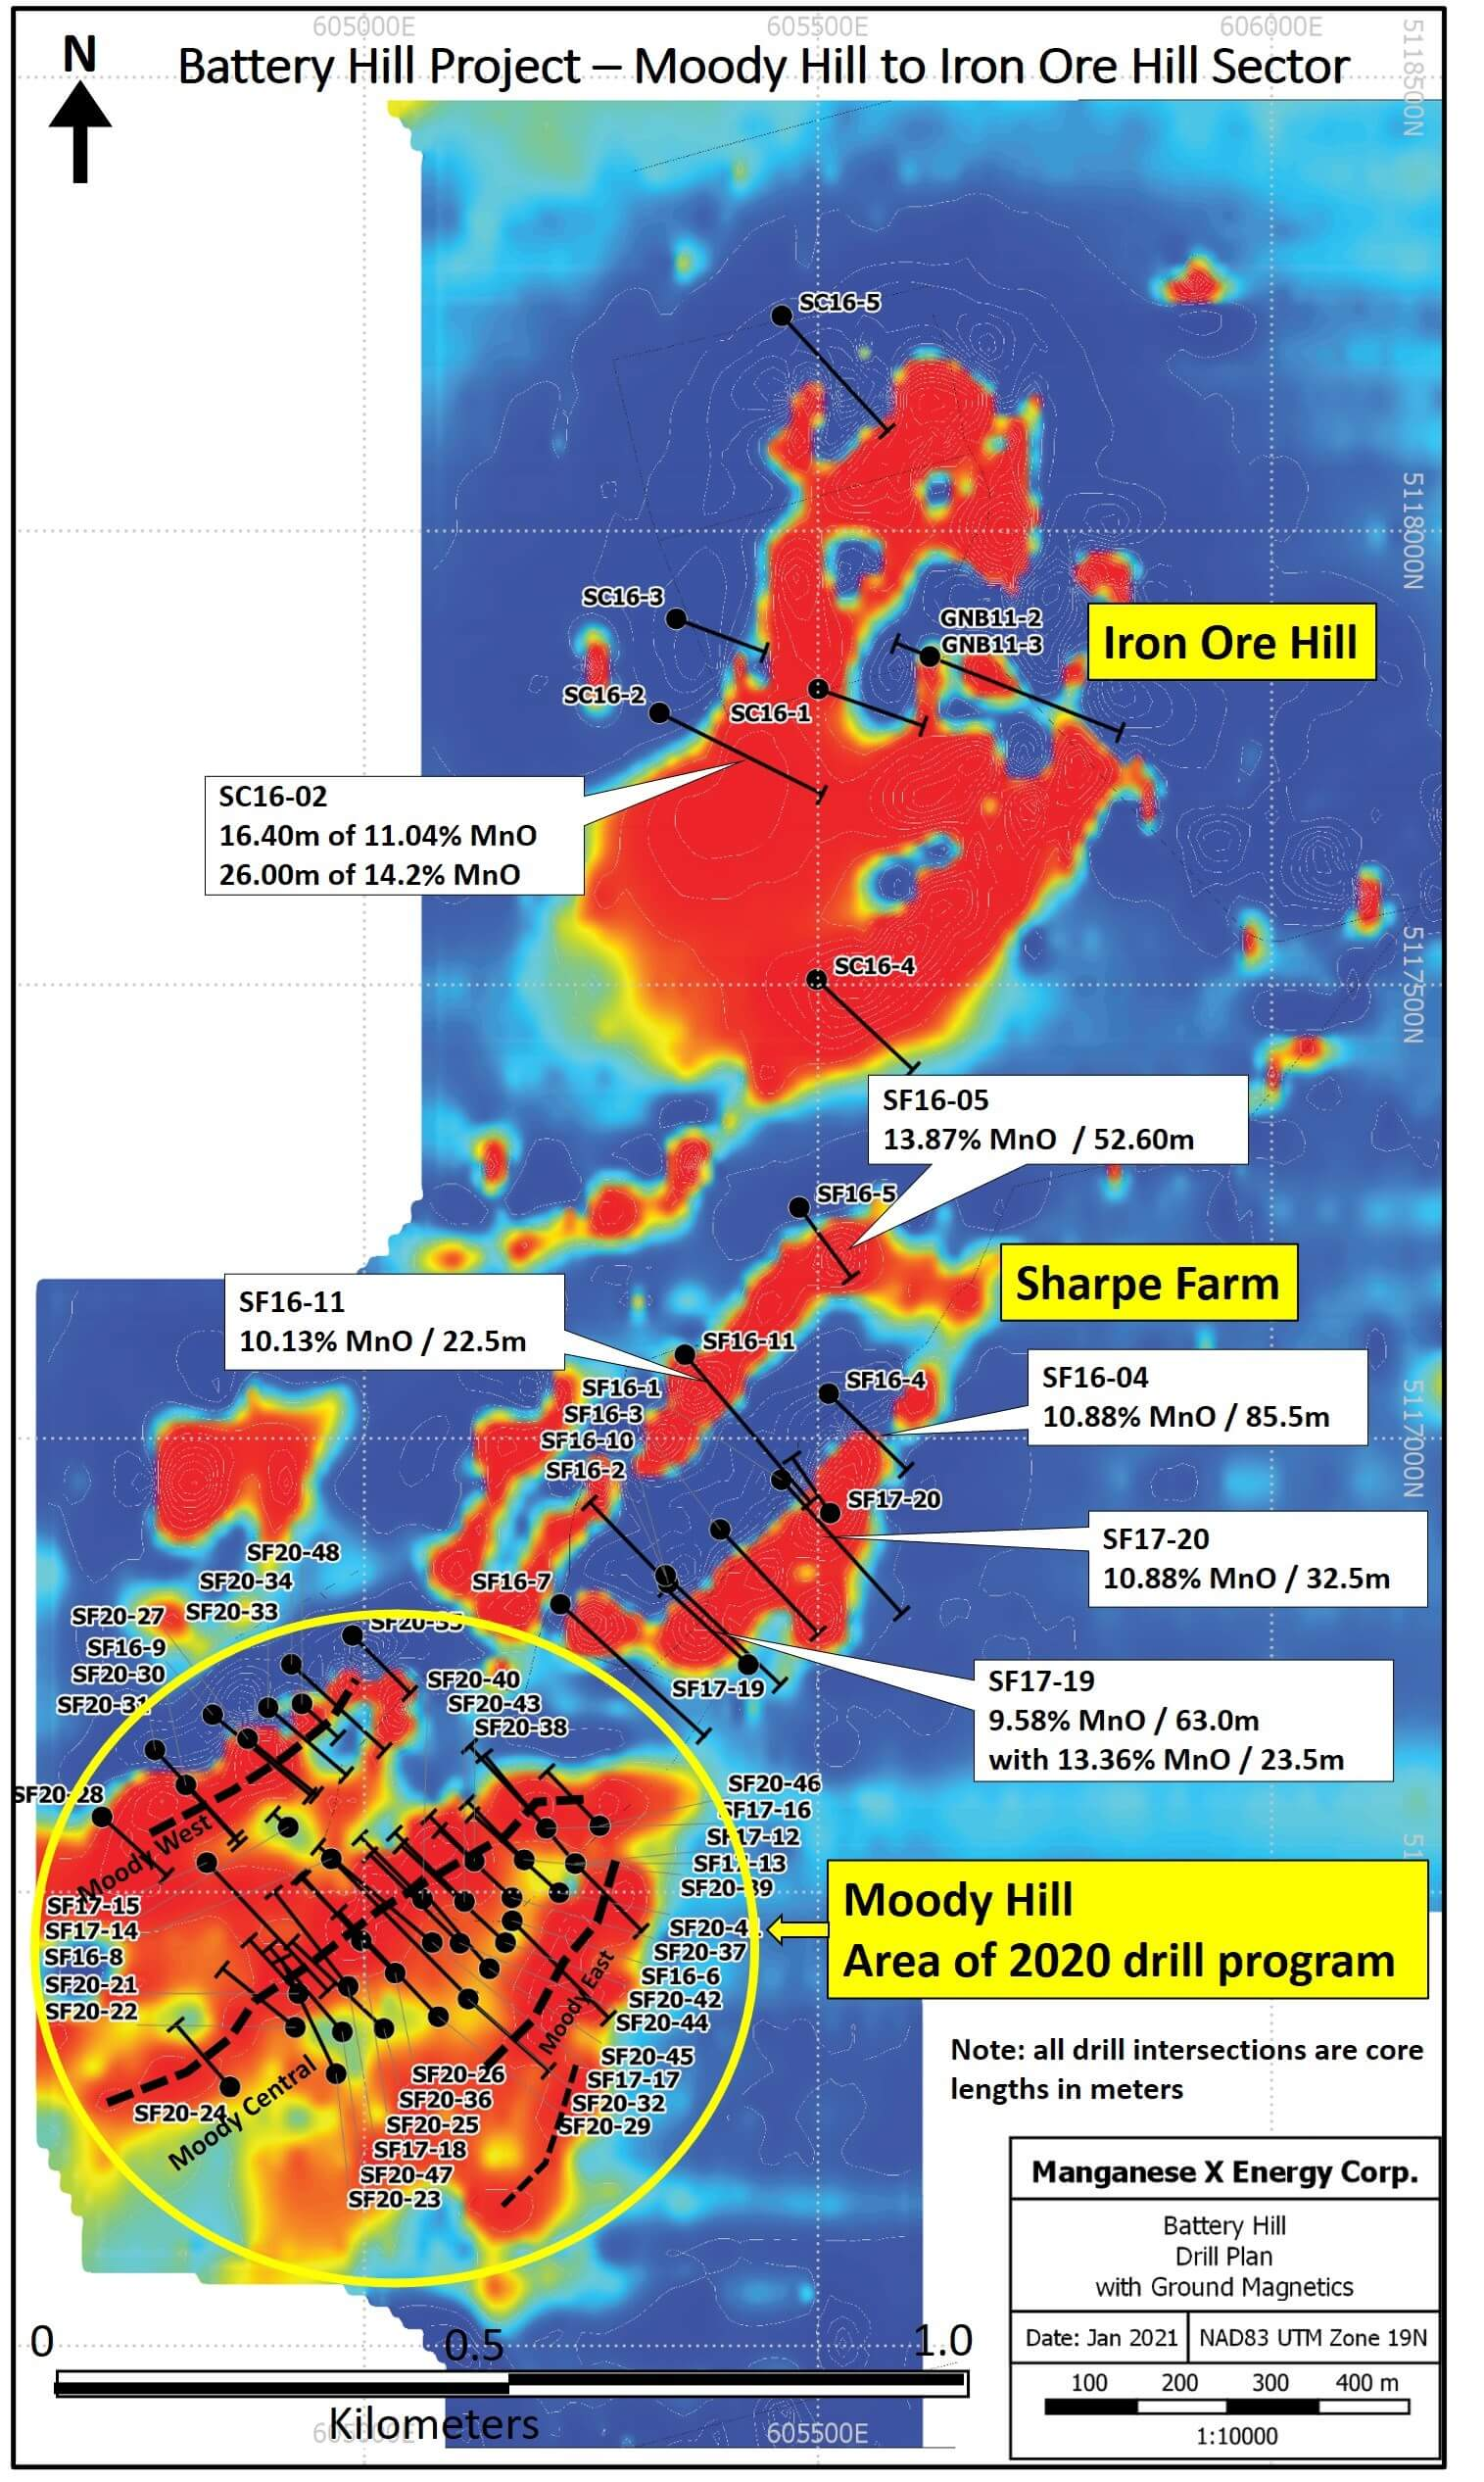 Battery Hill Project Drill Plan on Magnetics